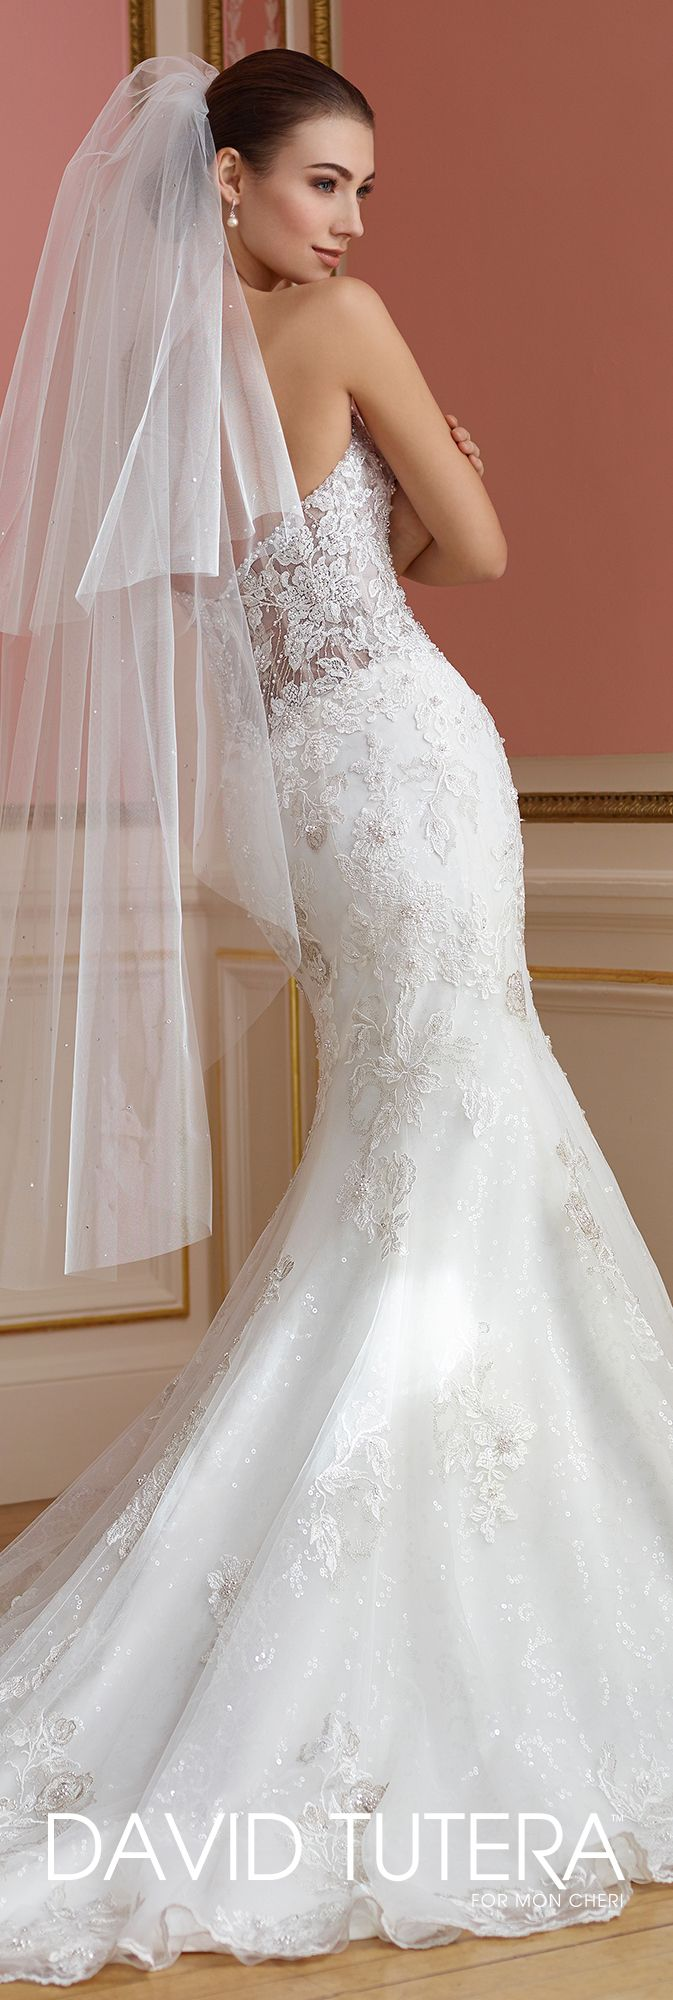 David Tutera for Mon Cheri Fall  2017 Collection - Style No. 217209 Vada - strapless sparkle tulle fit and flare wedding dress with beaded illusion lace dipped back